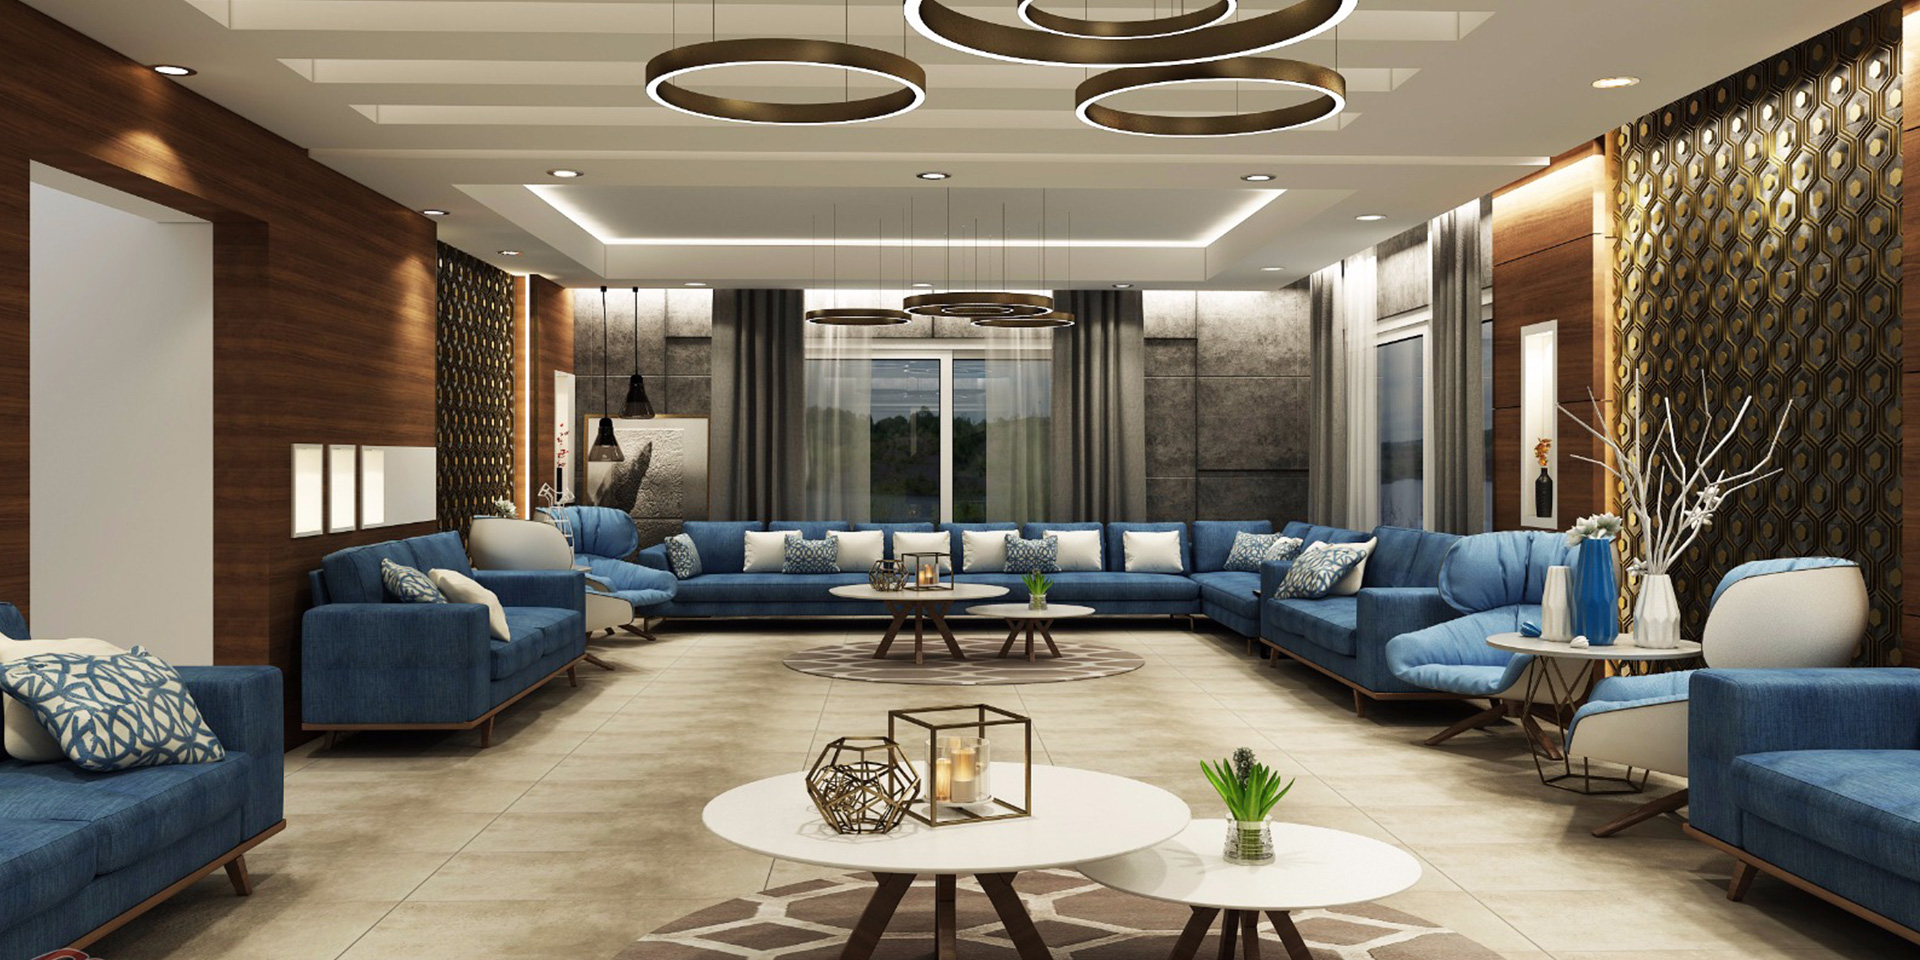 Top 10 interior design companies in dubai uae for Interior design companies